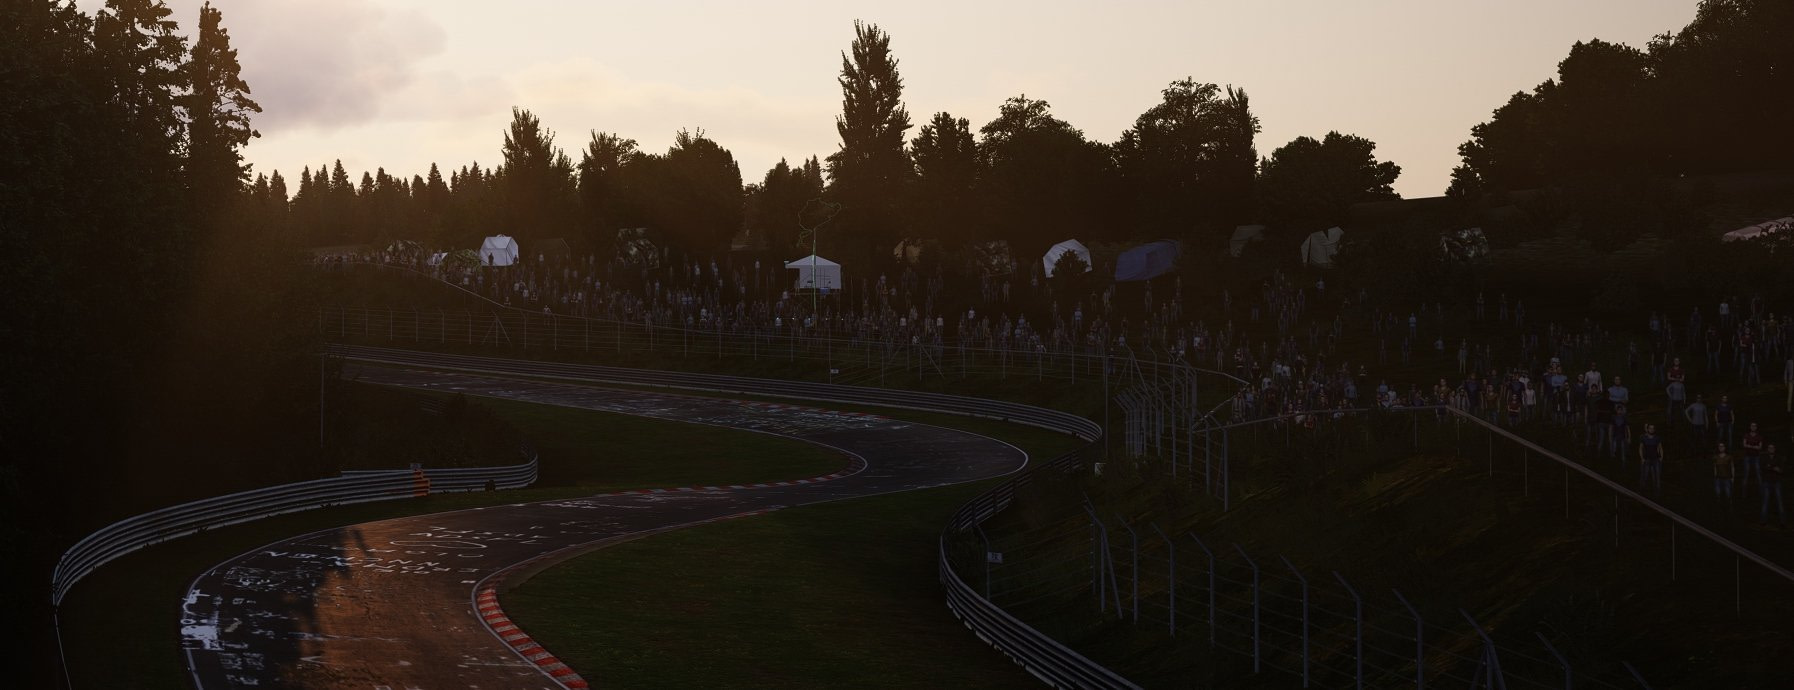 Read more about the article The 2h of Nordschleife